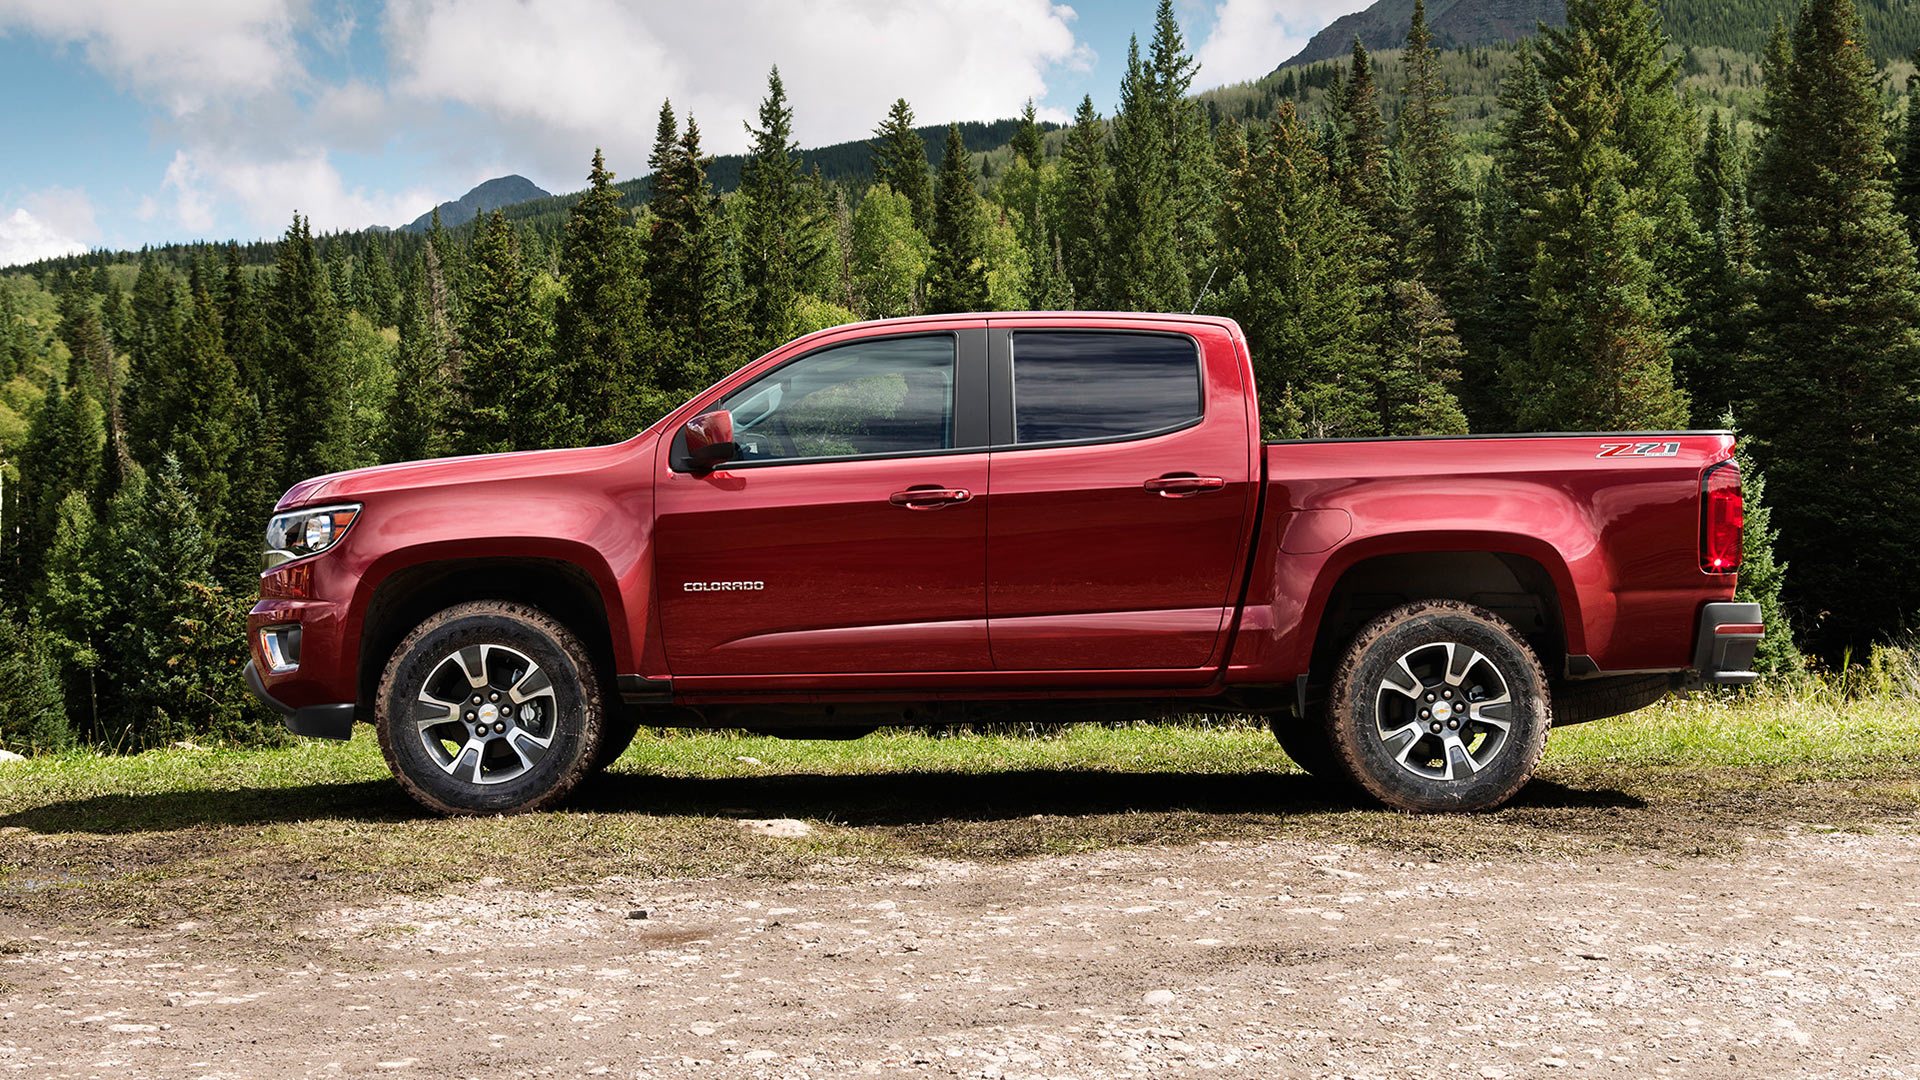 photo cab crew ft wb in box base extended truck chevrolet reviews colorado price photos features